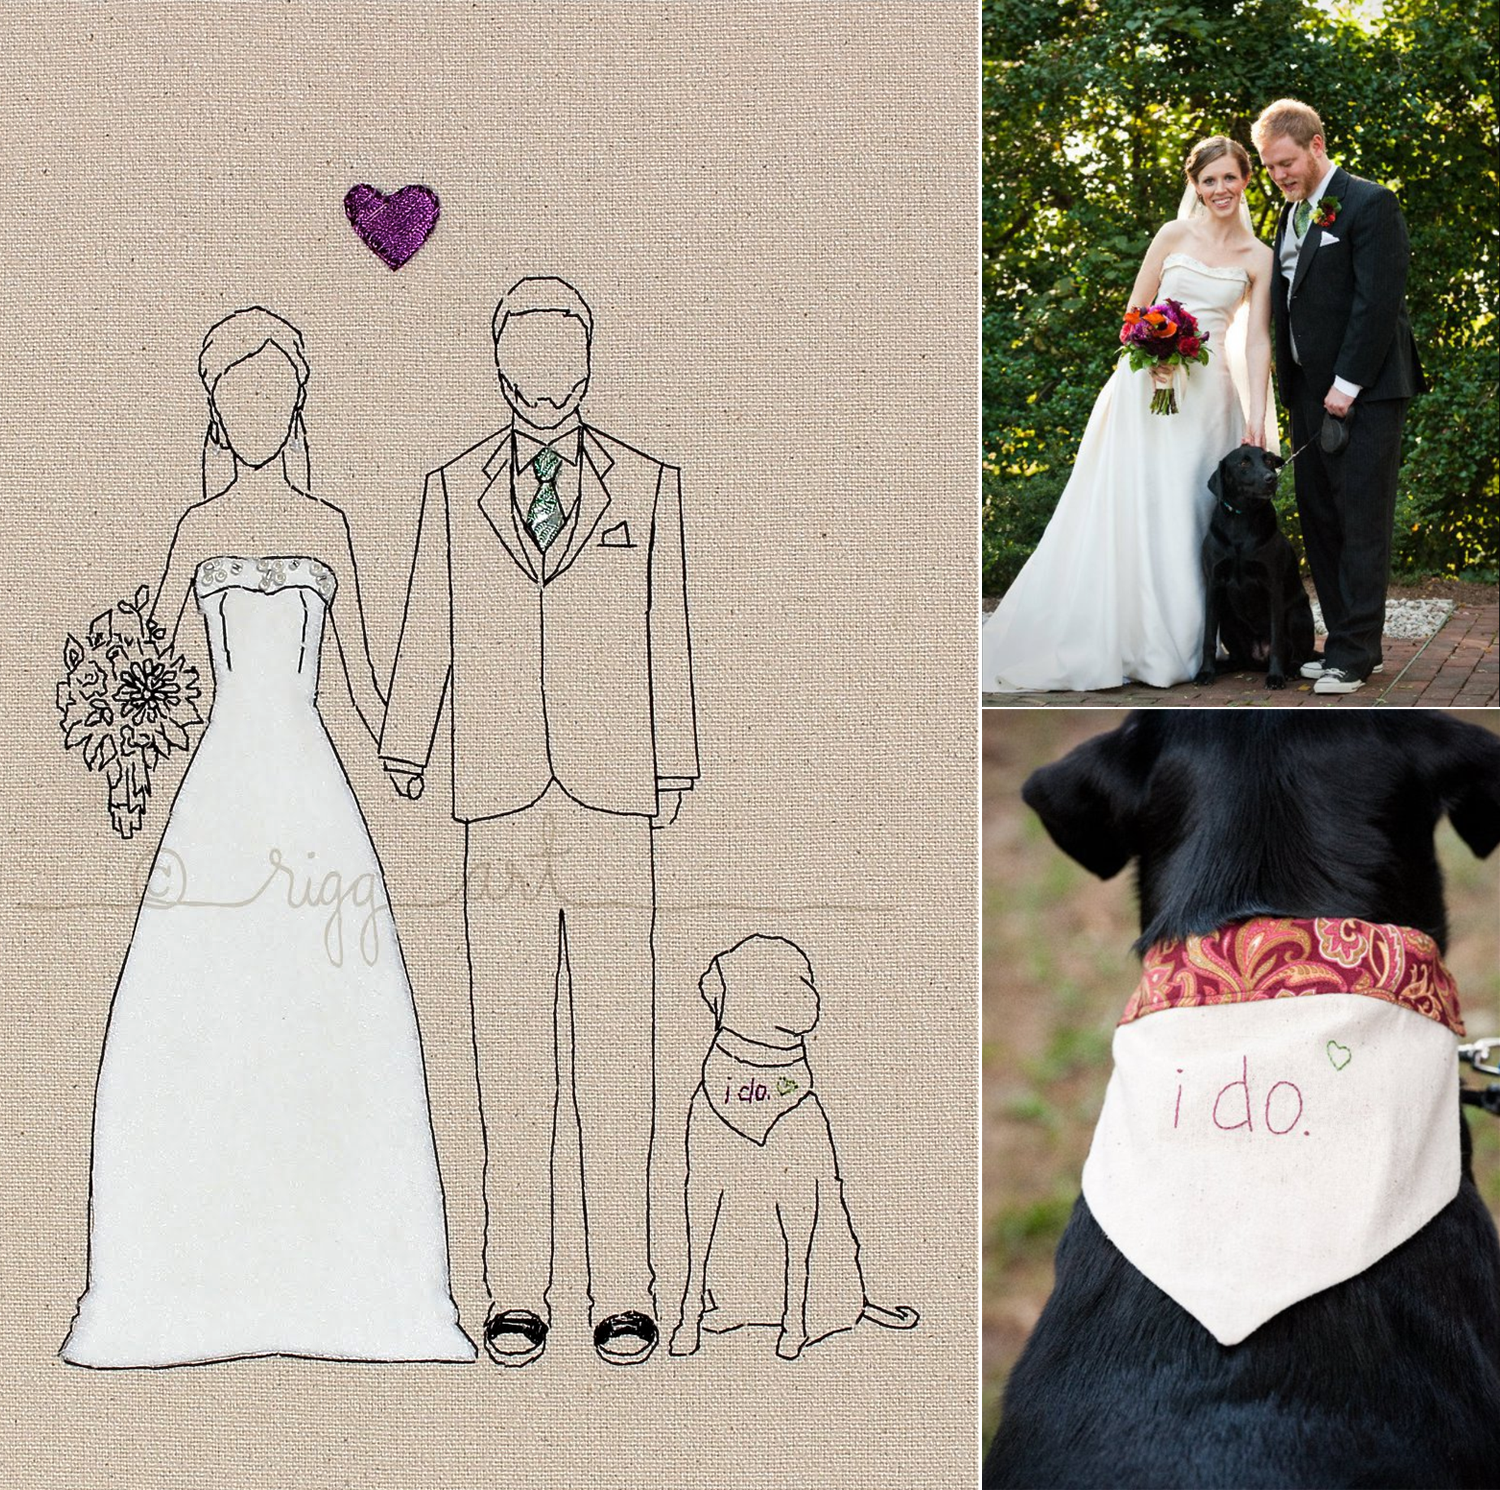 Wedding-portraits-handmade-bride-groom-art.original